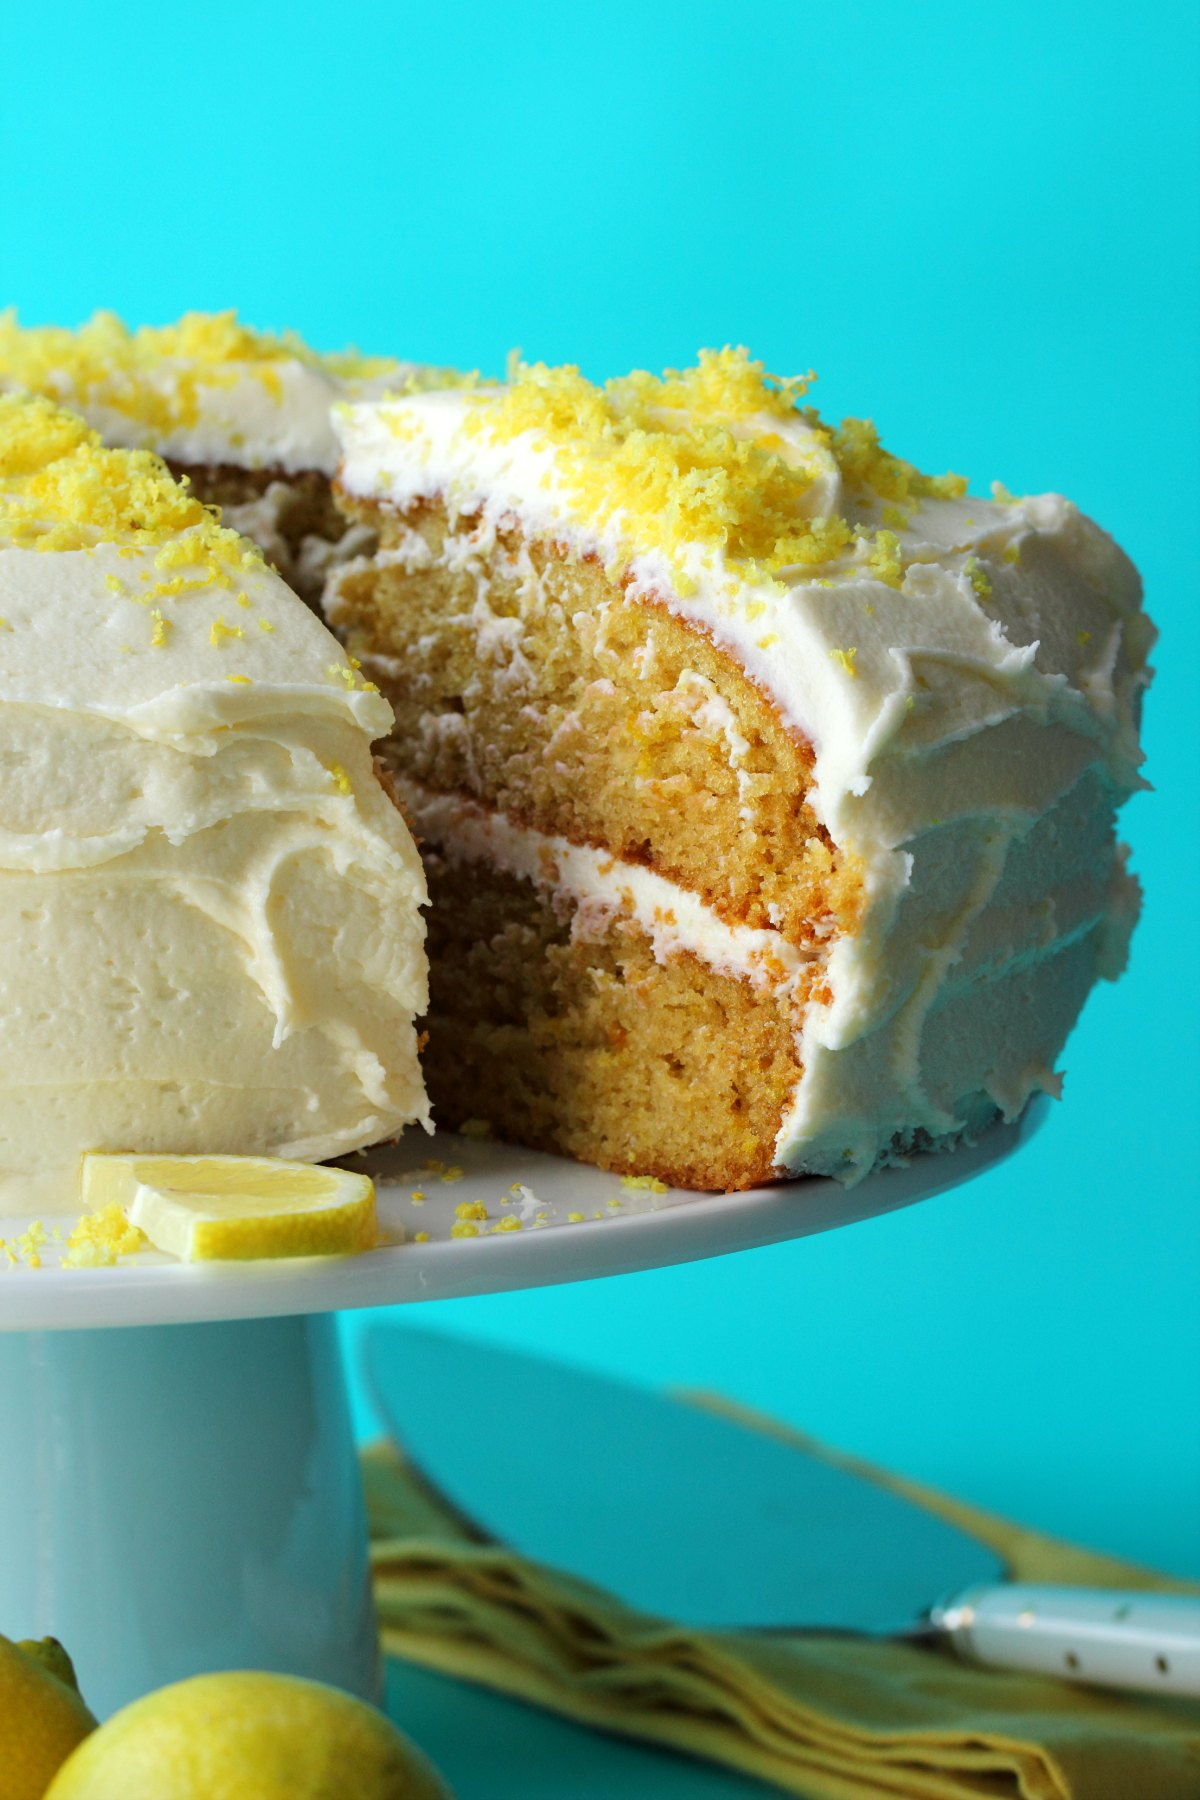 Lemon cake topped with lemon zest on a white cake stand.